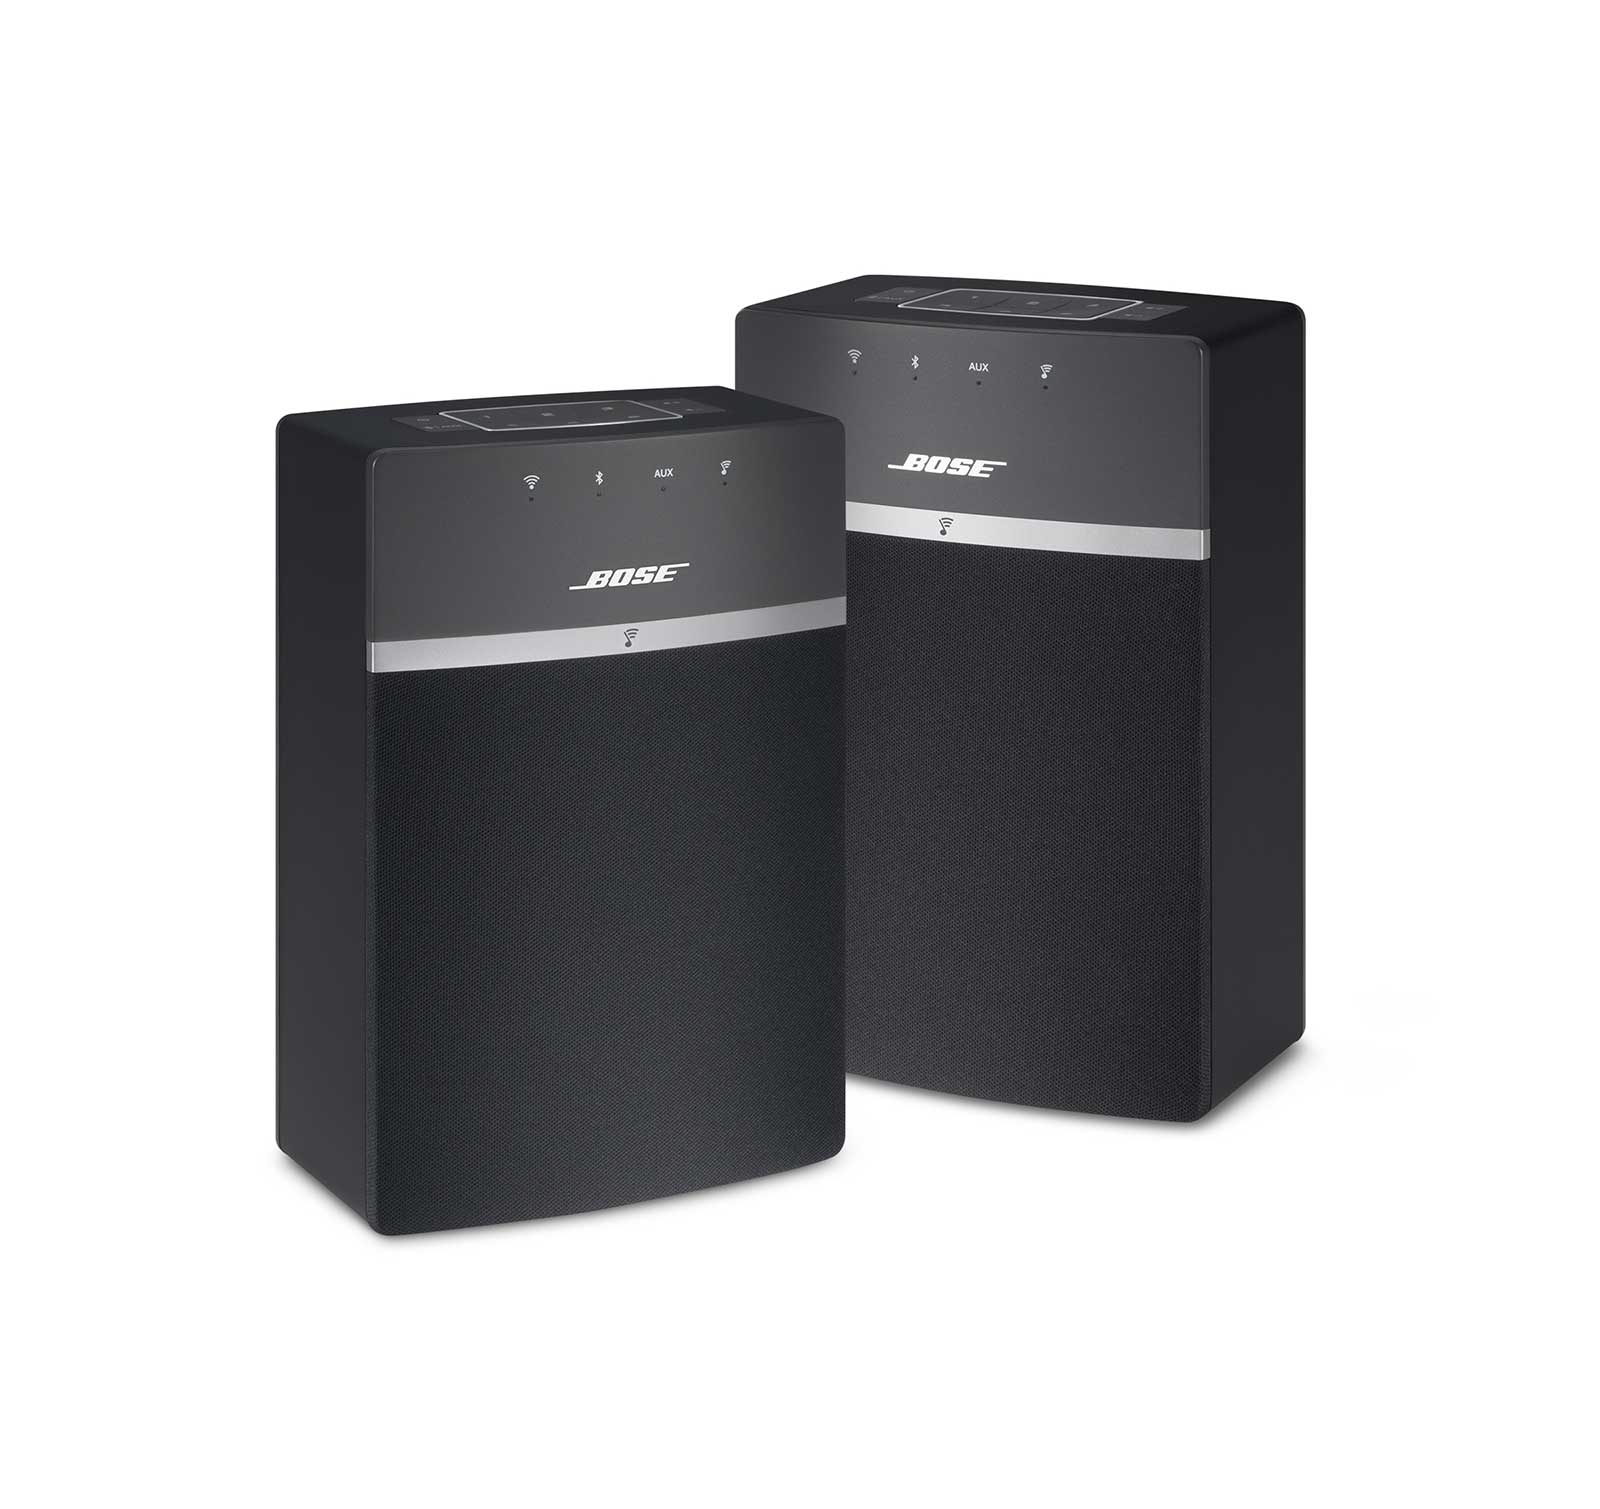 Bose SoundTouch 10x2 Black Wi-Fi Music System Starter Pack by Bose